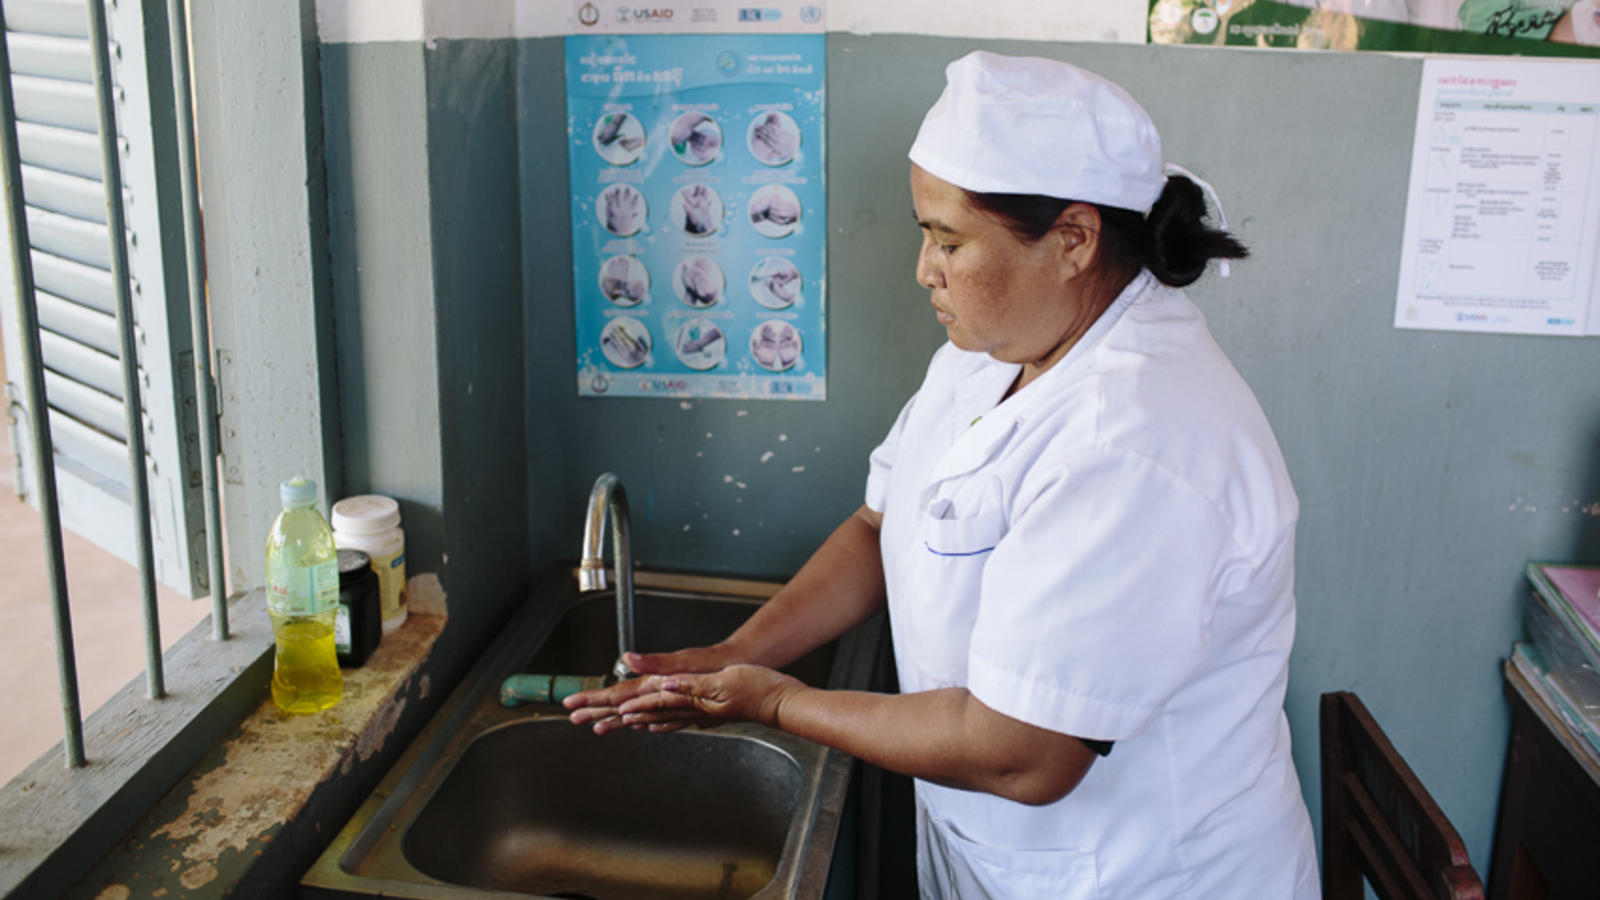 Midwife washes her hands at a sink, Cambodia